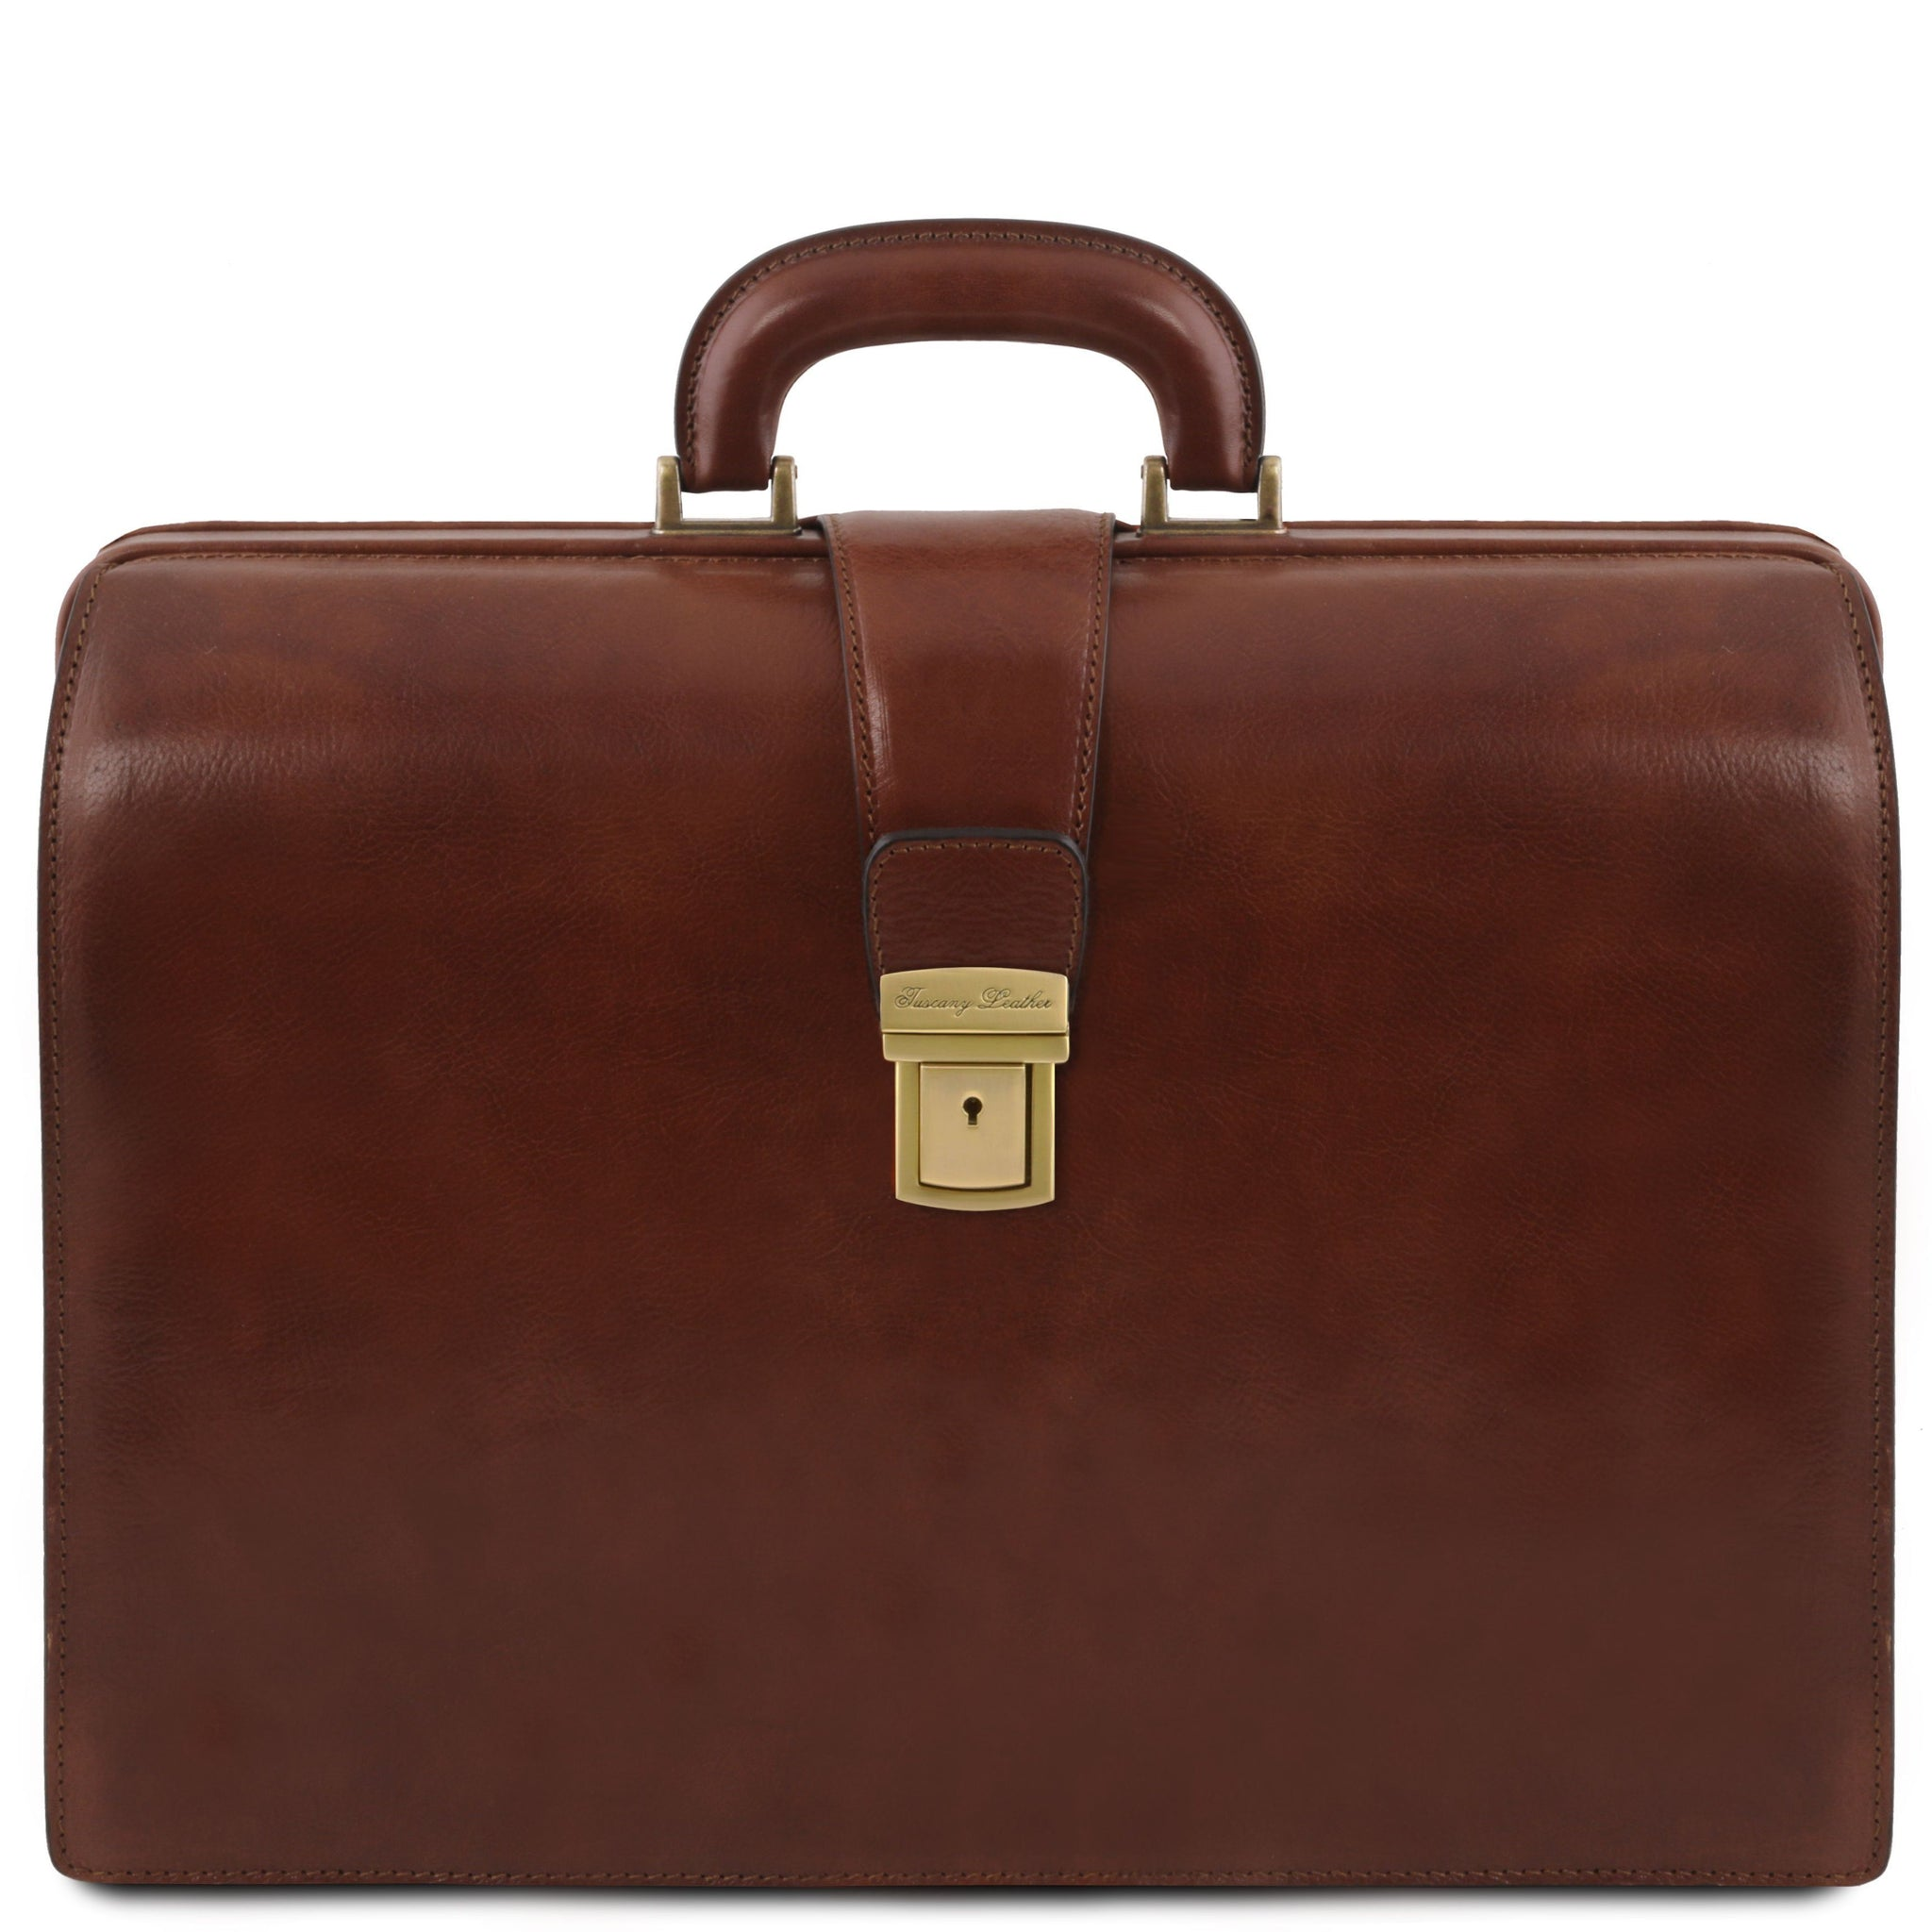 Tuscany Leather 1st Class Canova Leather Doctors Bag